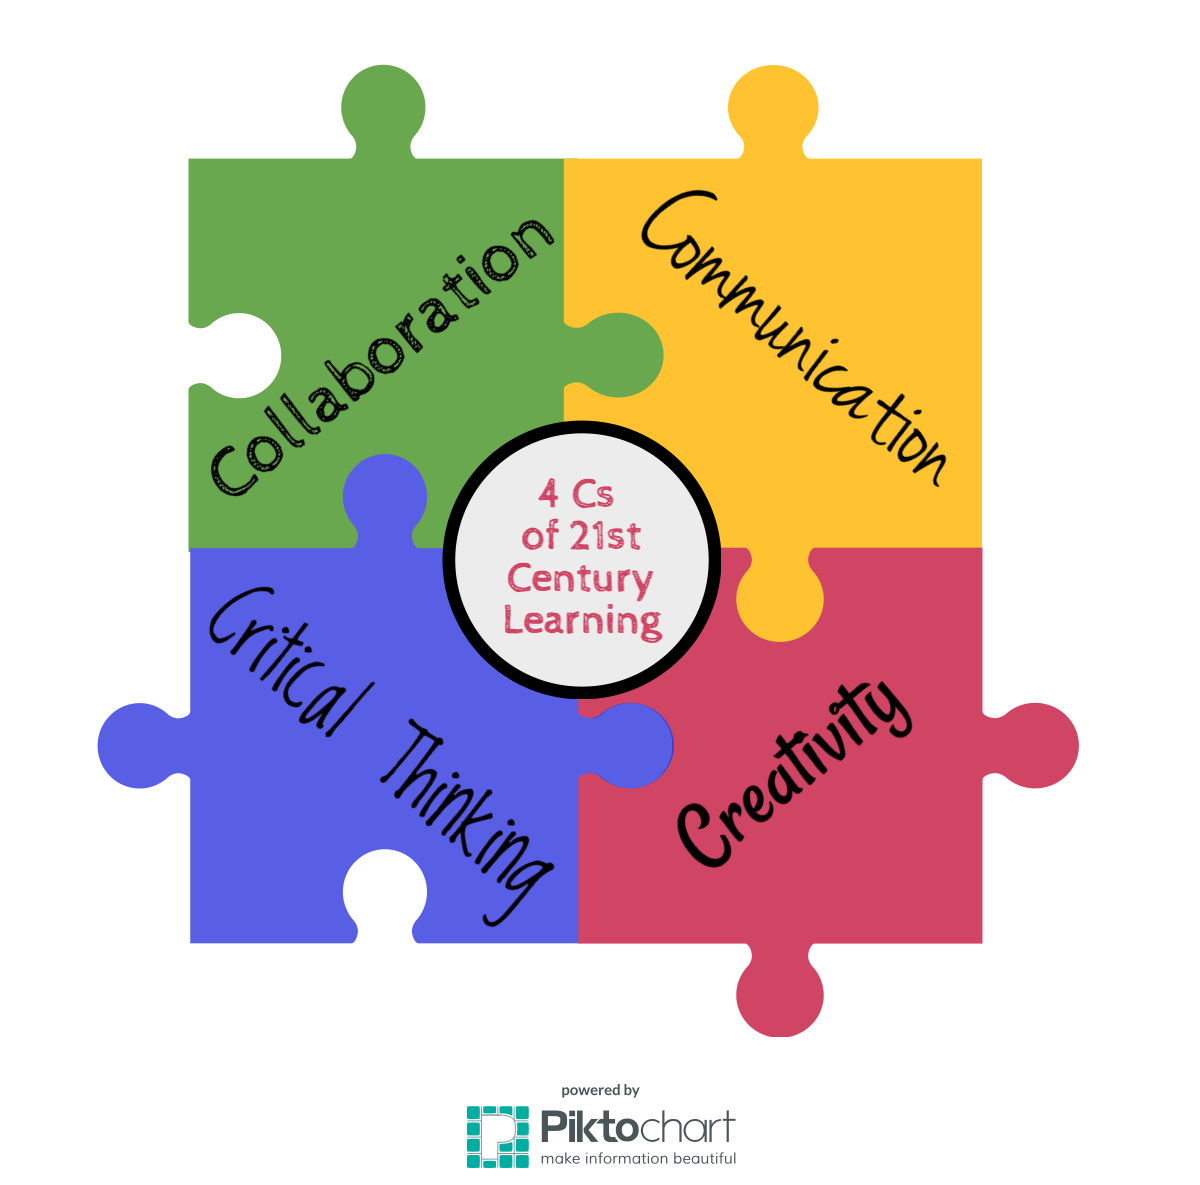 21st Century Learning 4cs - Google Search